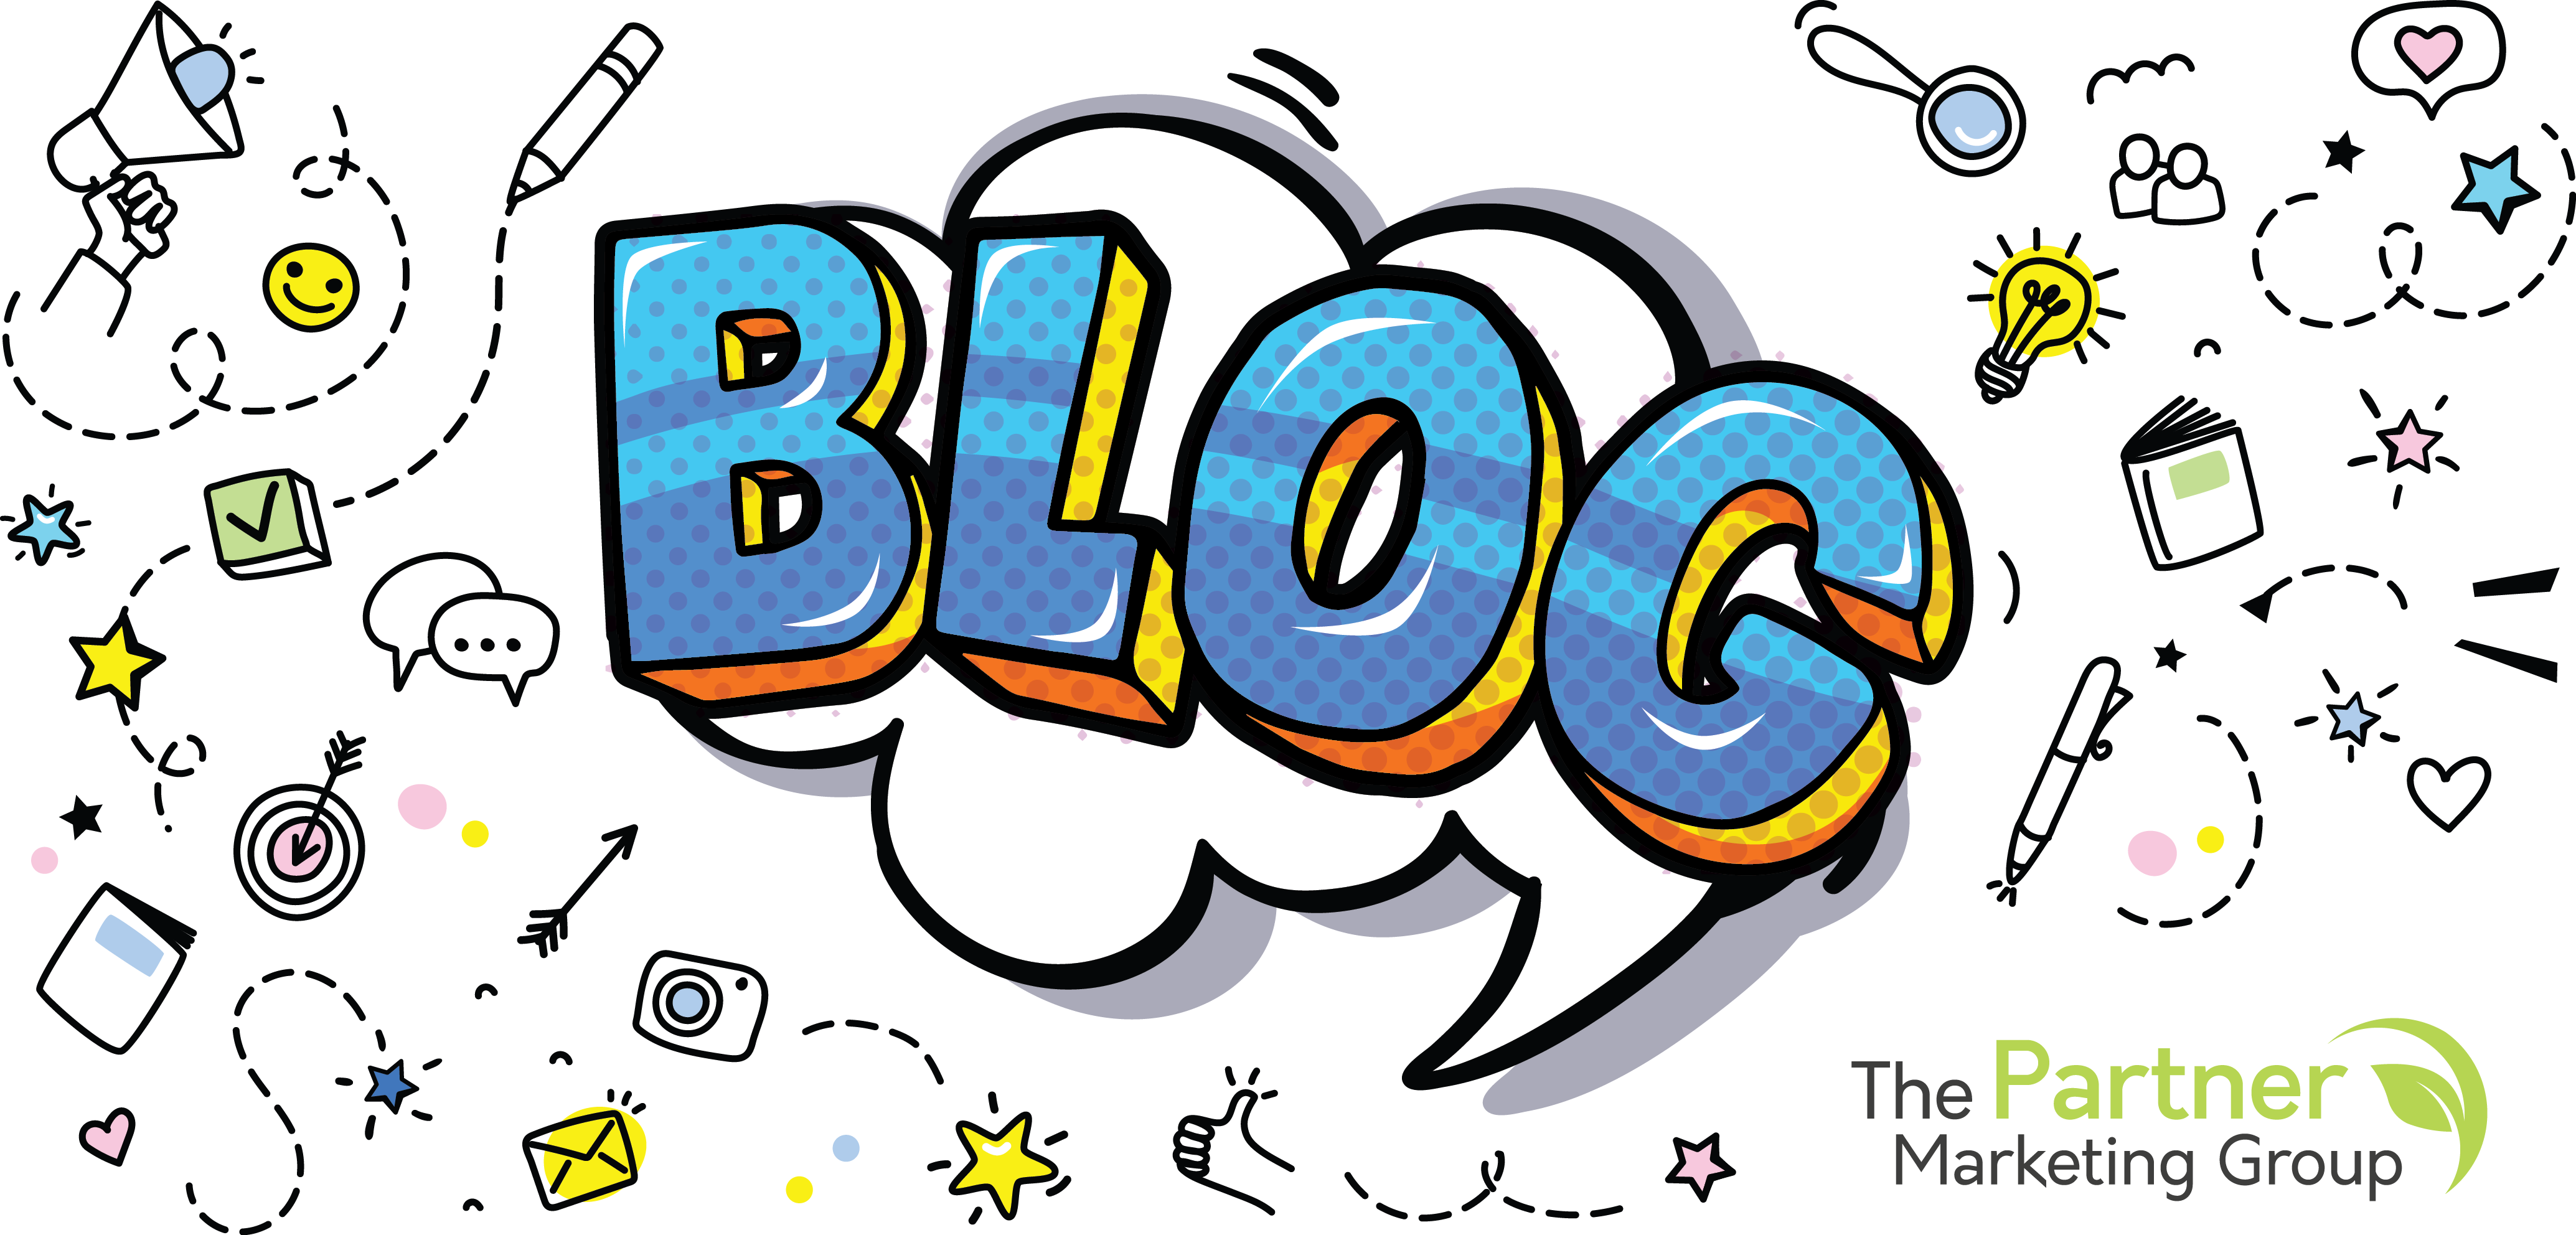 6 Must-Haves for a Great Blog